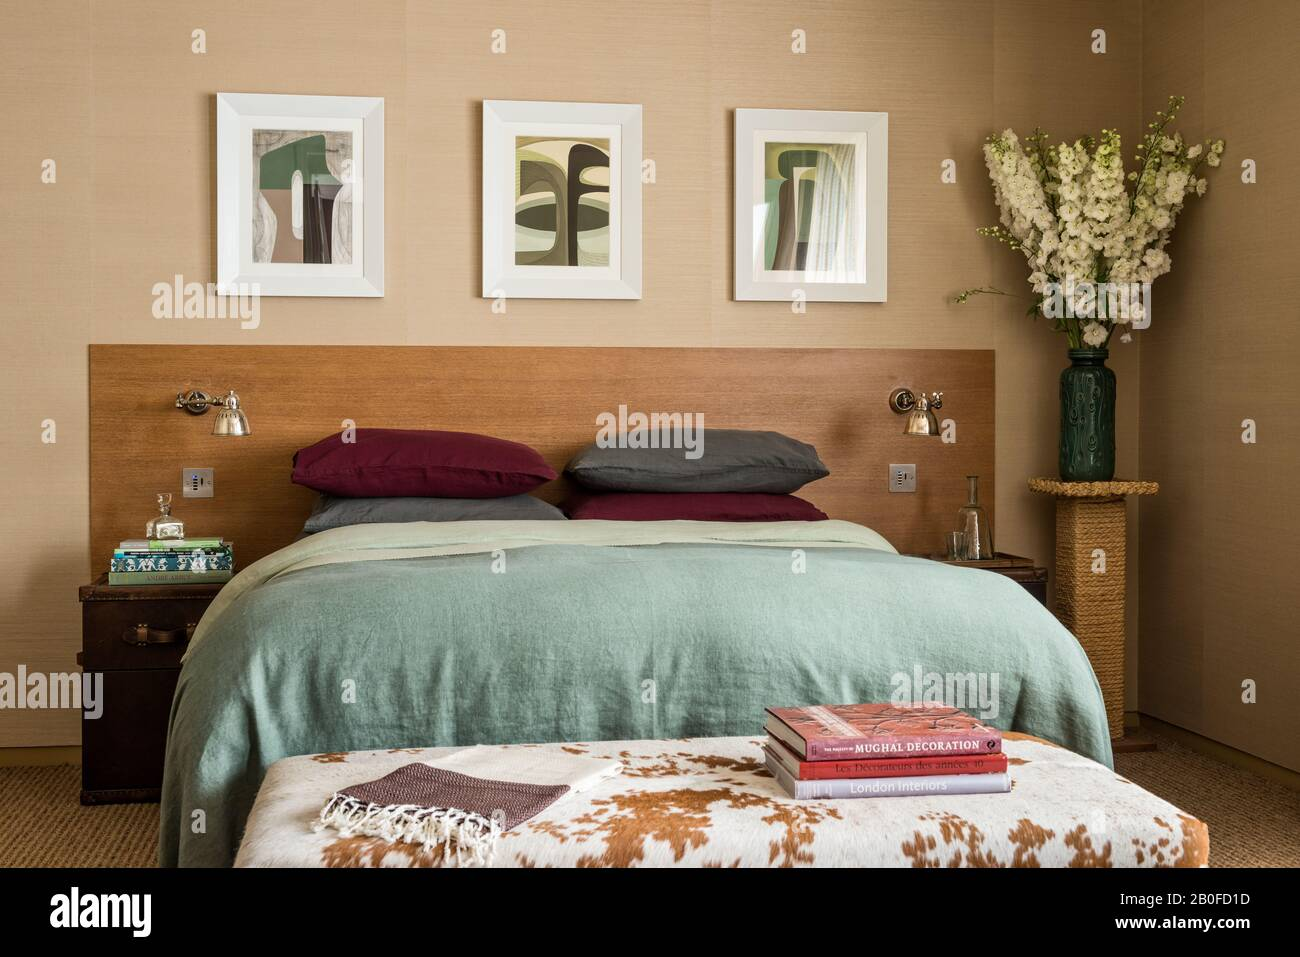 Modern art above dopuble bed with light green blanket and books on cowhide footstool. Stock Photo